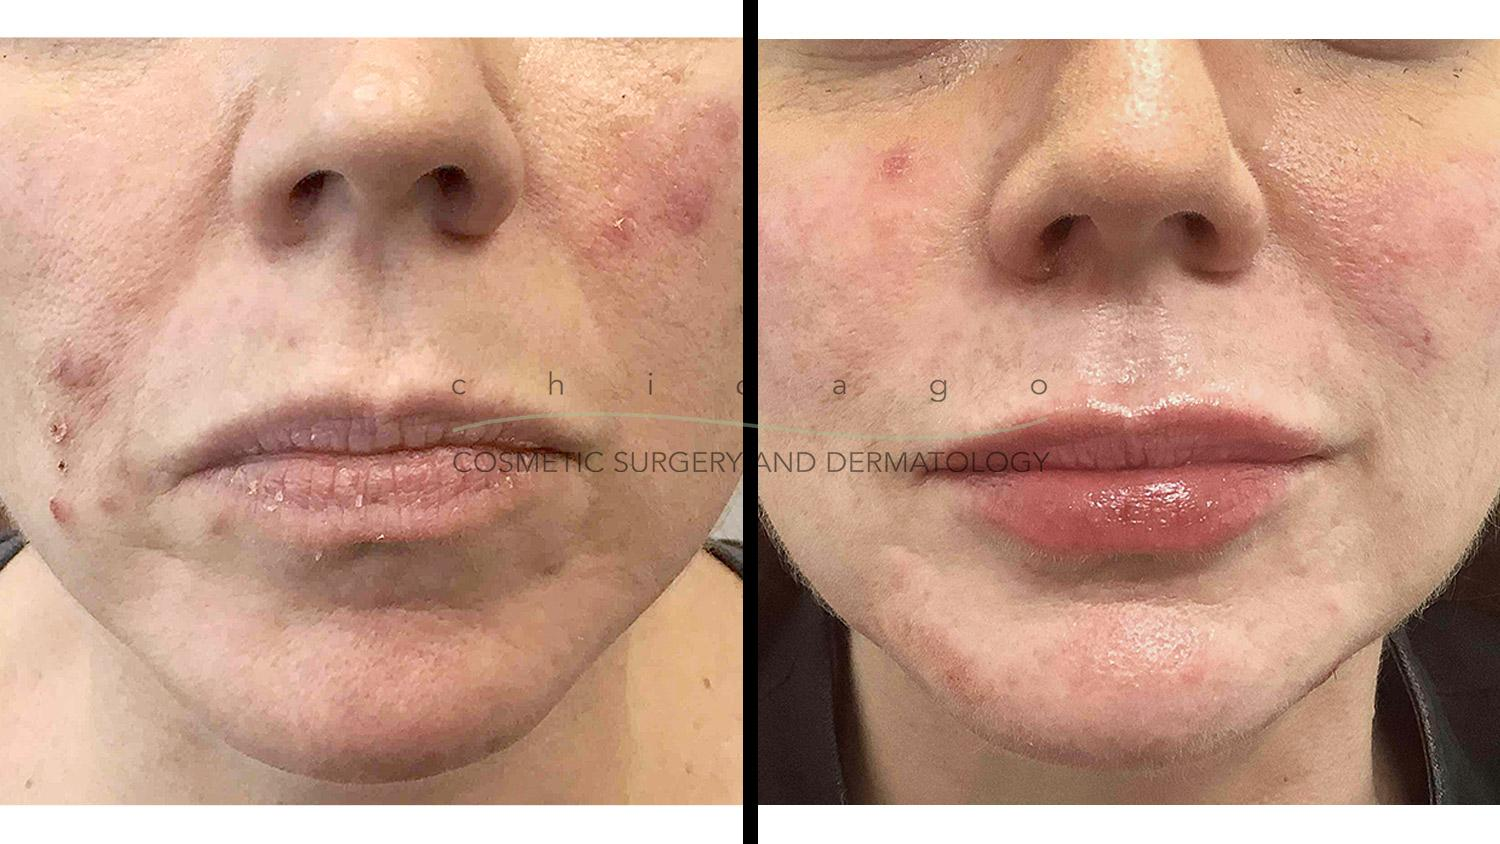 Accutane for acne before and after